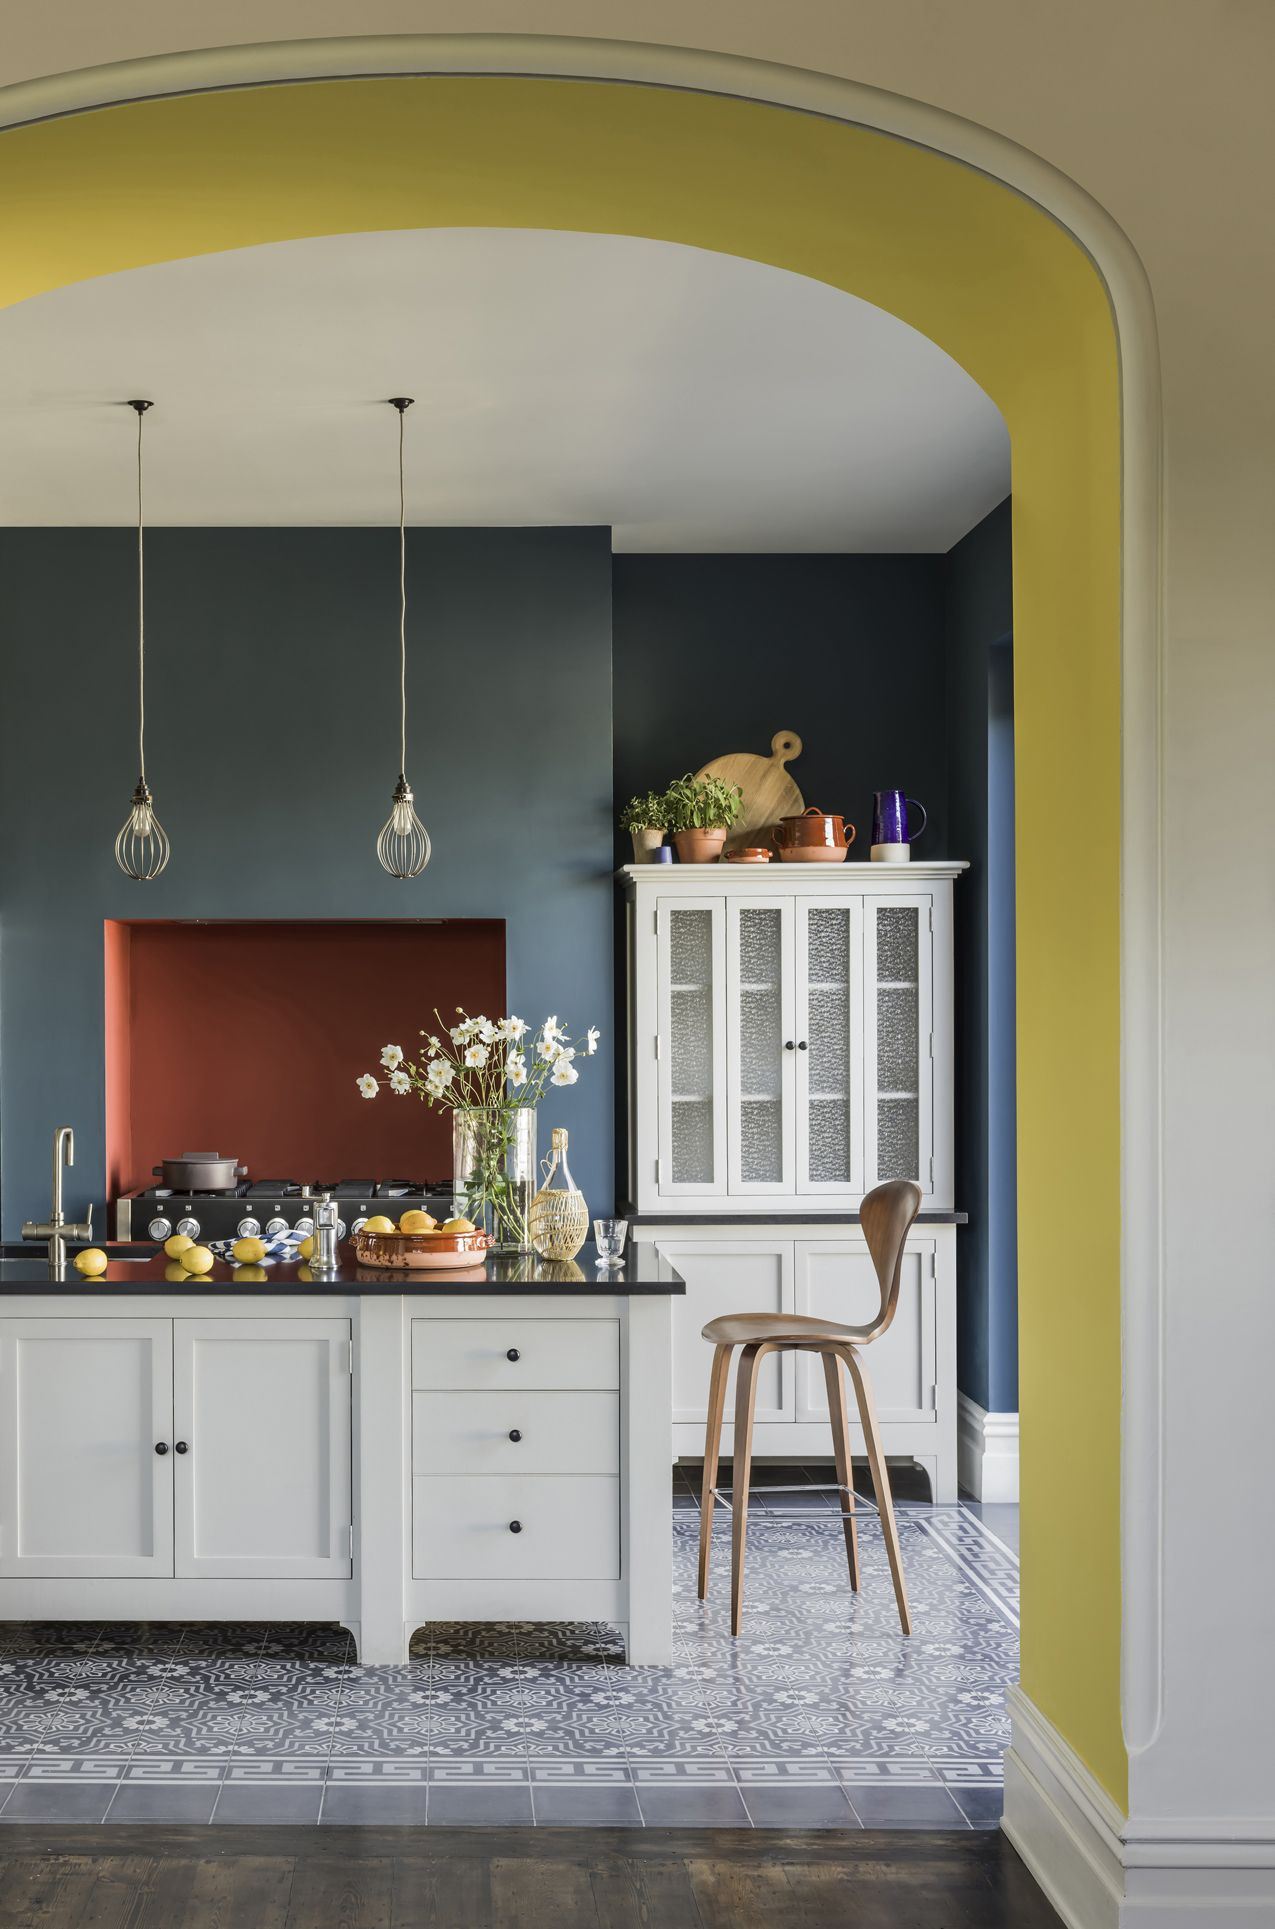 Interiors dna paint by conran grey walls paint colors for Colour scheme for kitchen walls